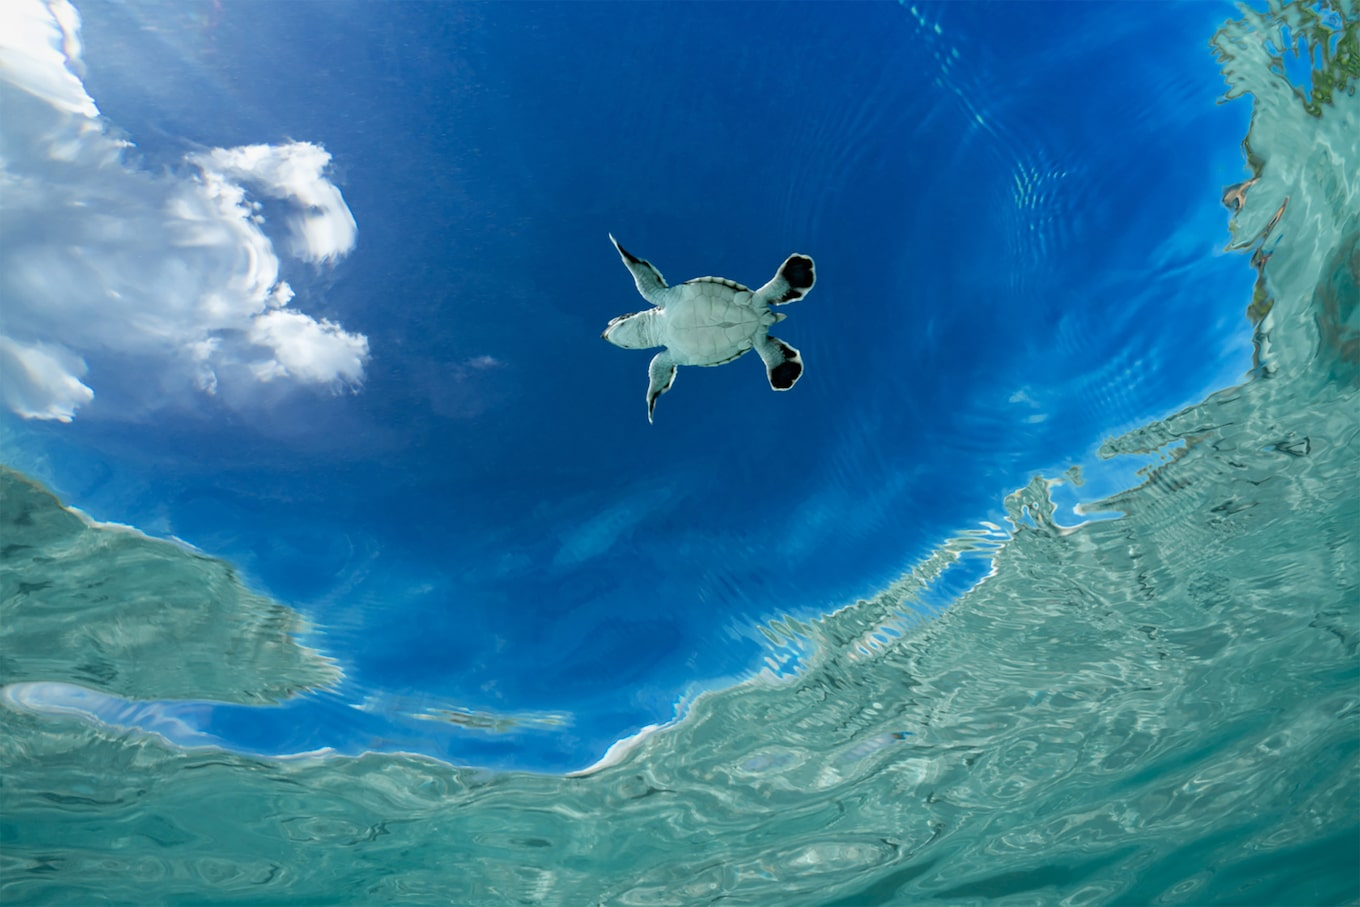 alexis rosenfeld sony alpha 7r2 underwater view from elow of a seaturtle